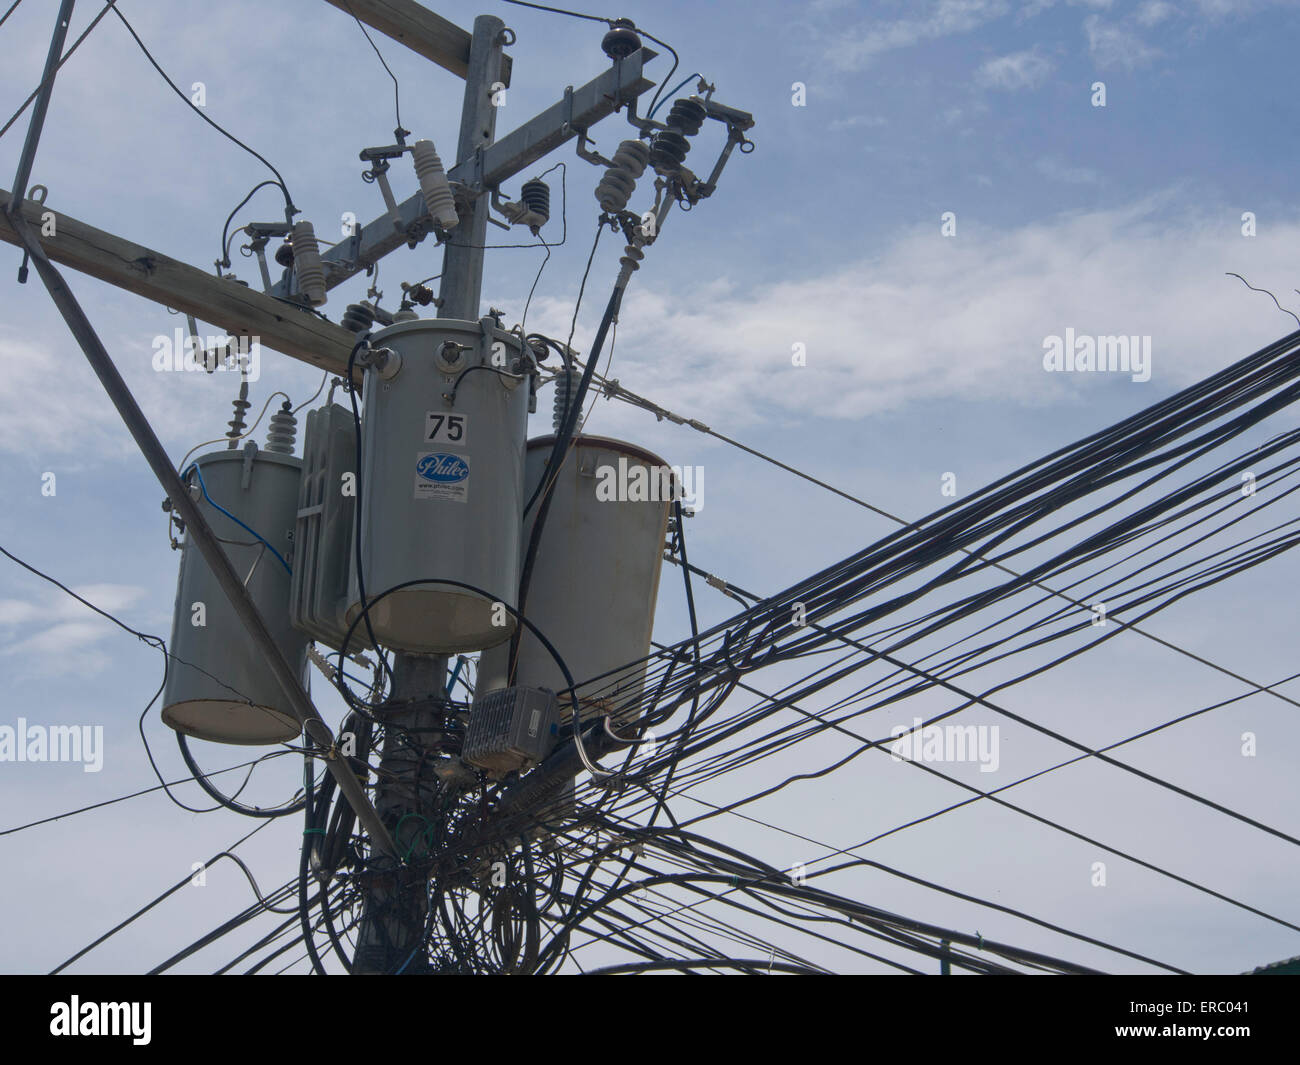 Philippines Electricity Stock Photos Eagle Wiring Devices Chaotic Supply Cables Tangled In Posts Boracay Image